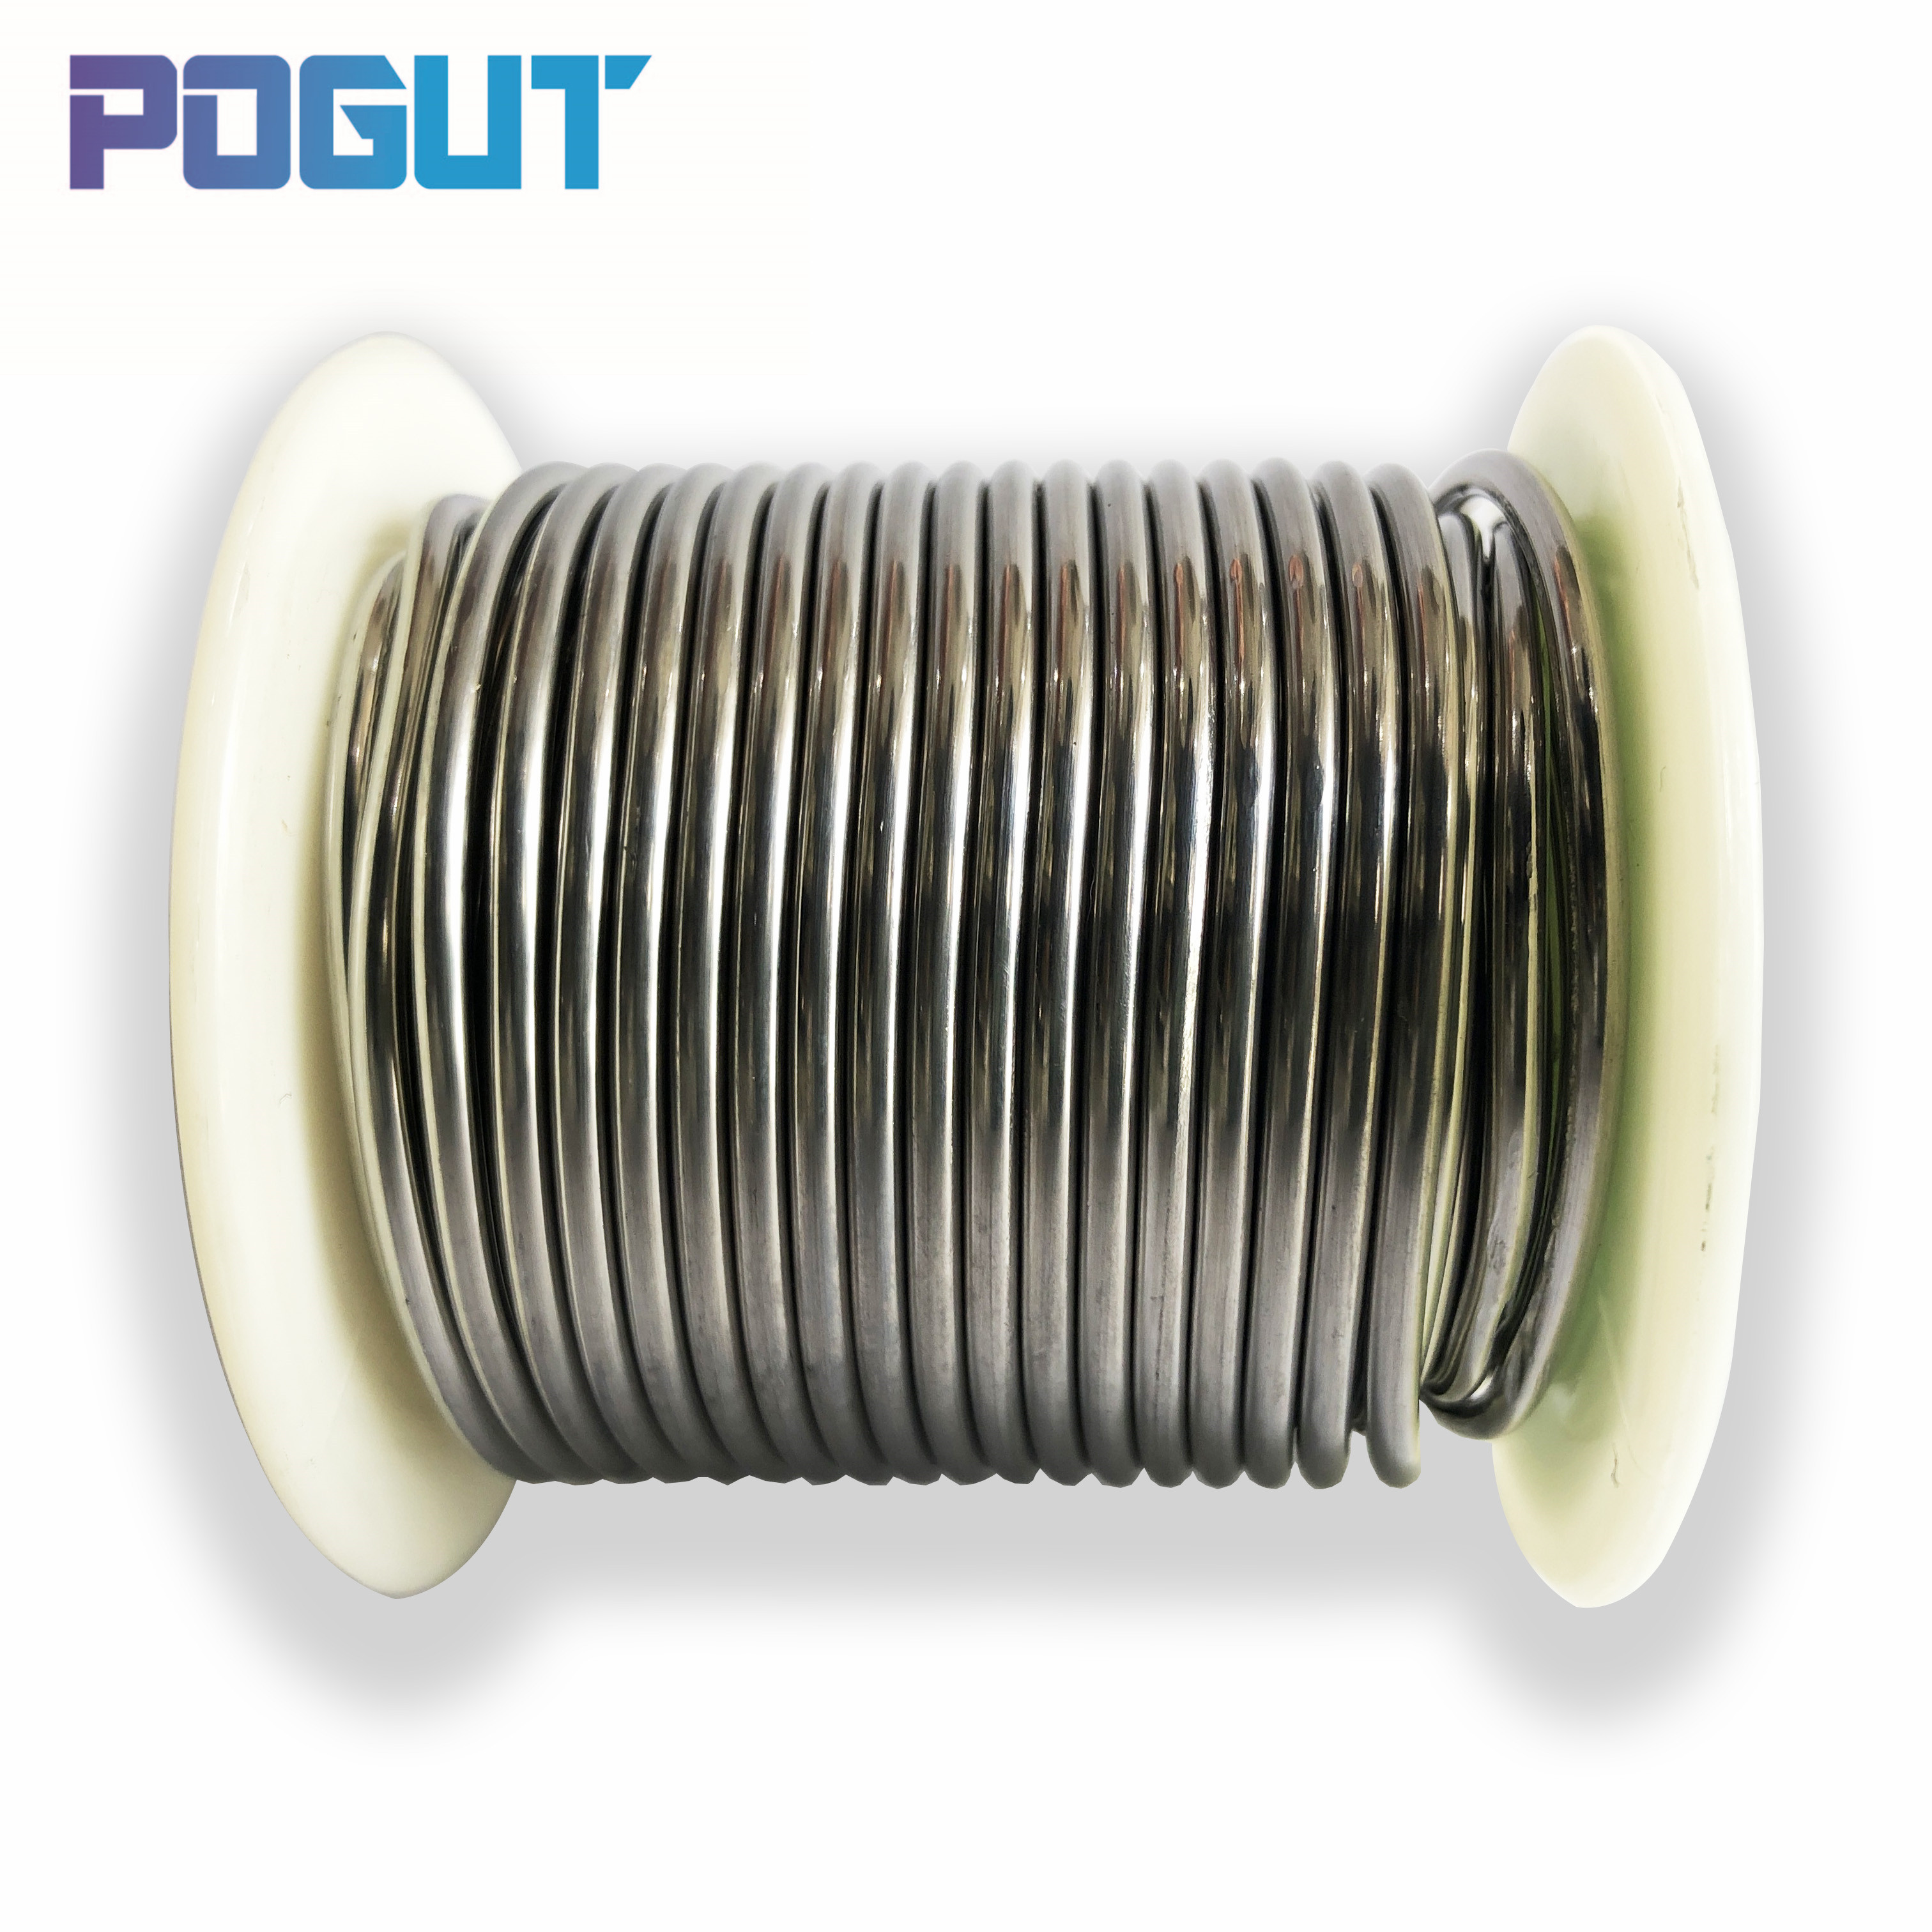 Premium Solder For Stained Glass, 60/40 Tin/Lead,450g / 1 Pound Spool, 2.3mm Diameter